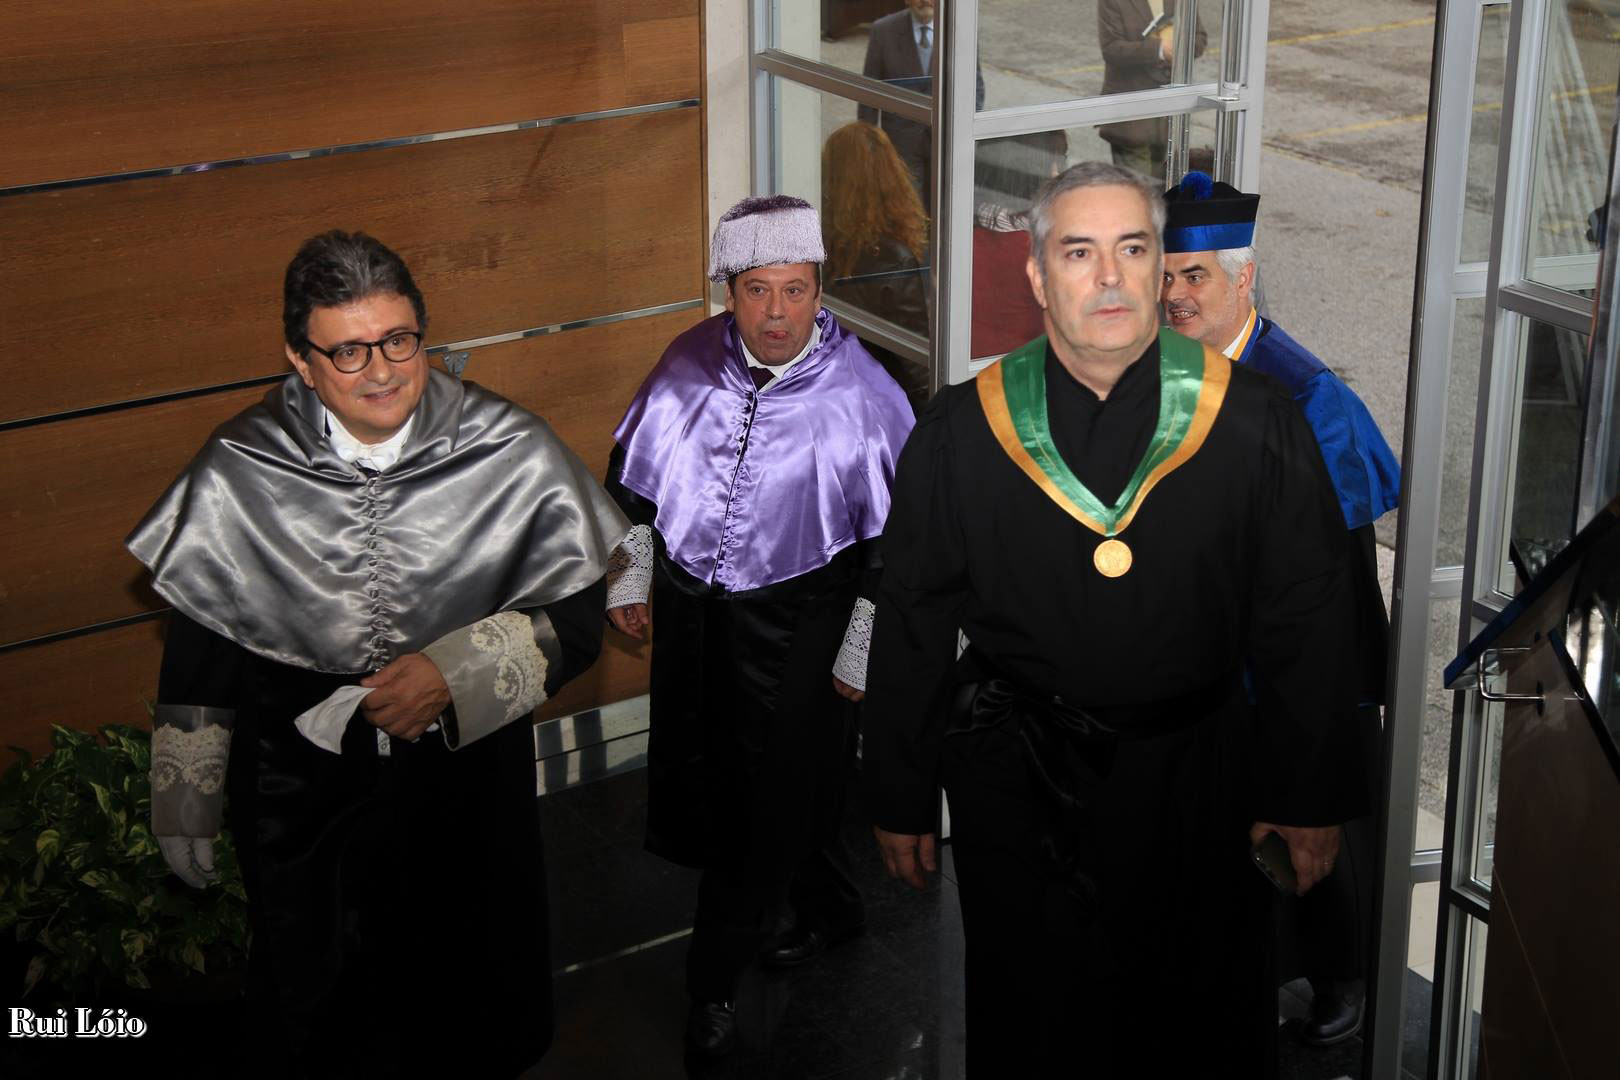 Doutor Honoris Causa